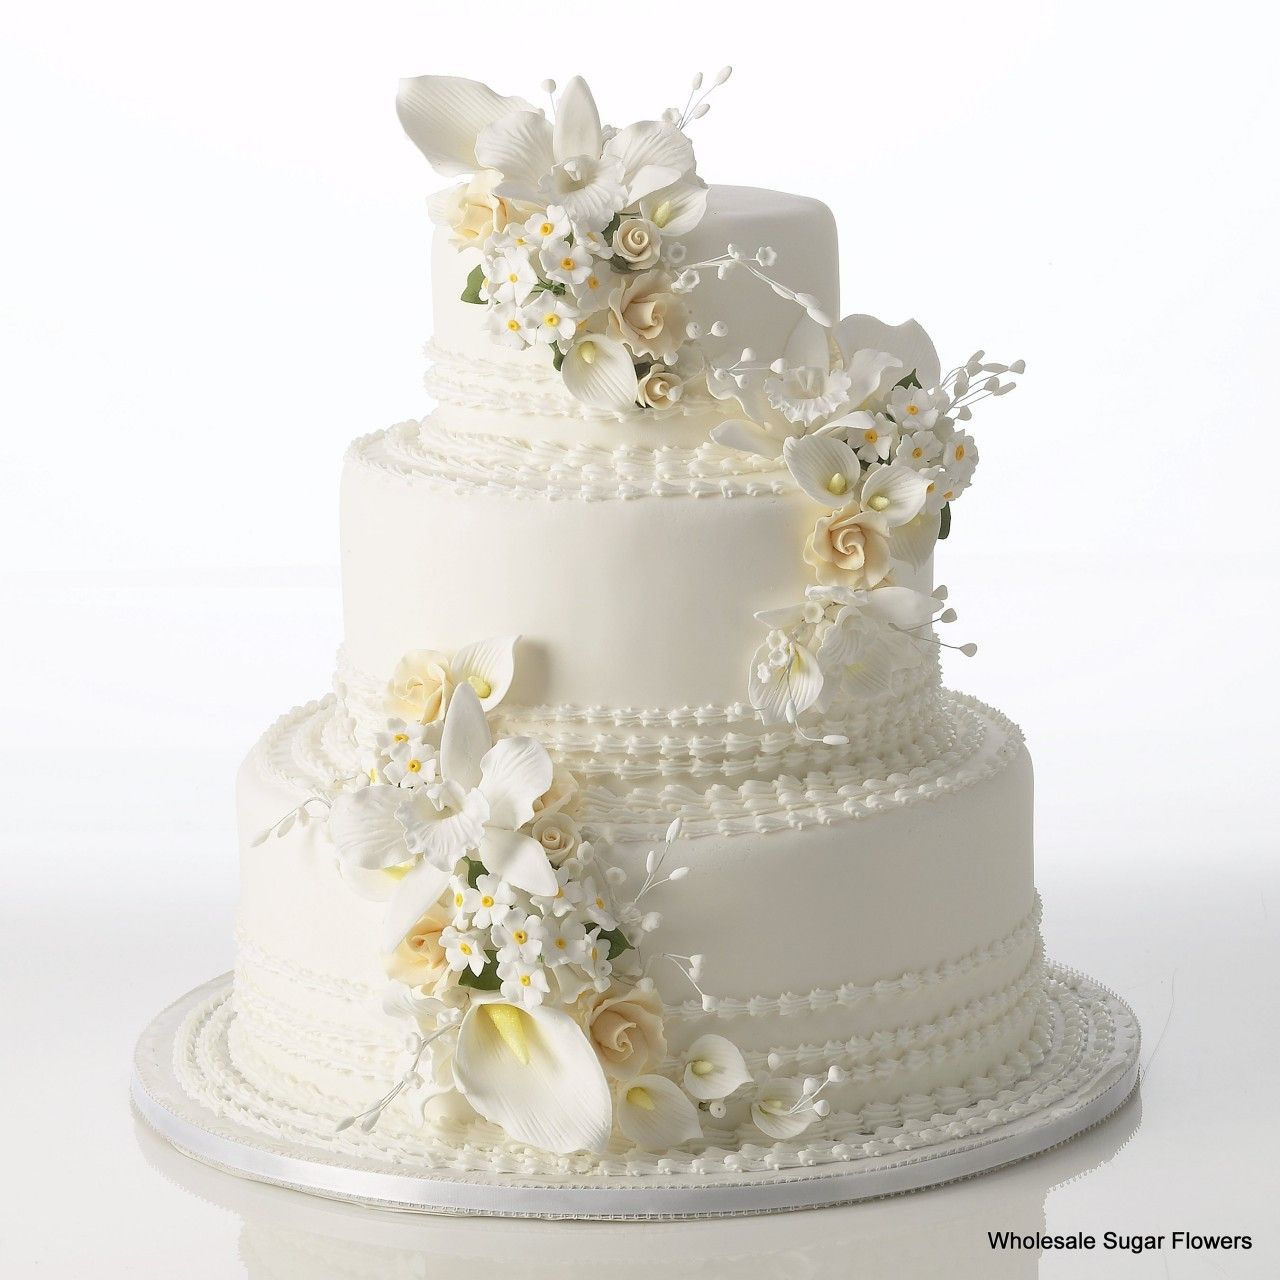 Gumpaste Flowers For Wedding Cakes: Charming Lilies Cake Kit, Pre